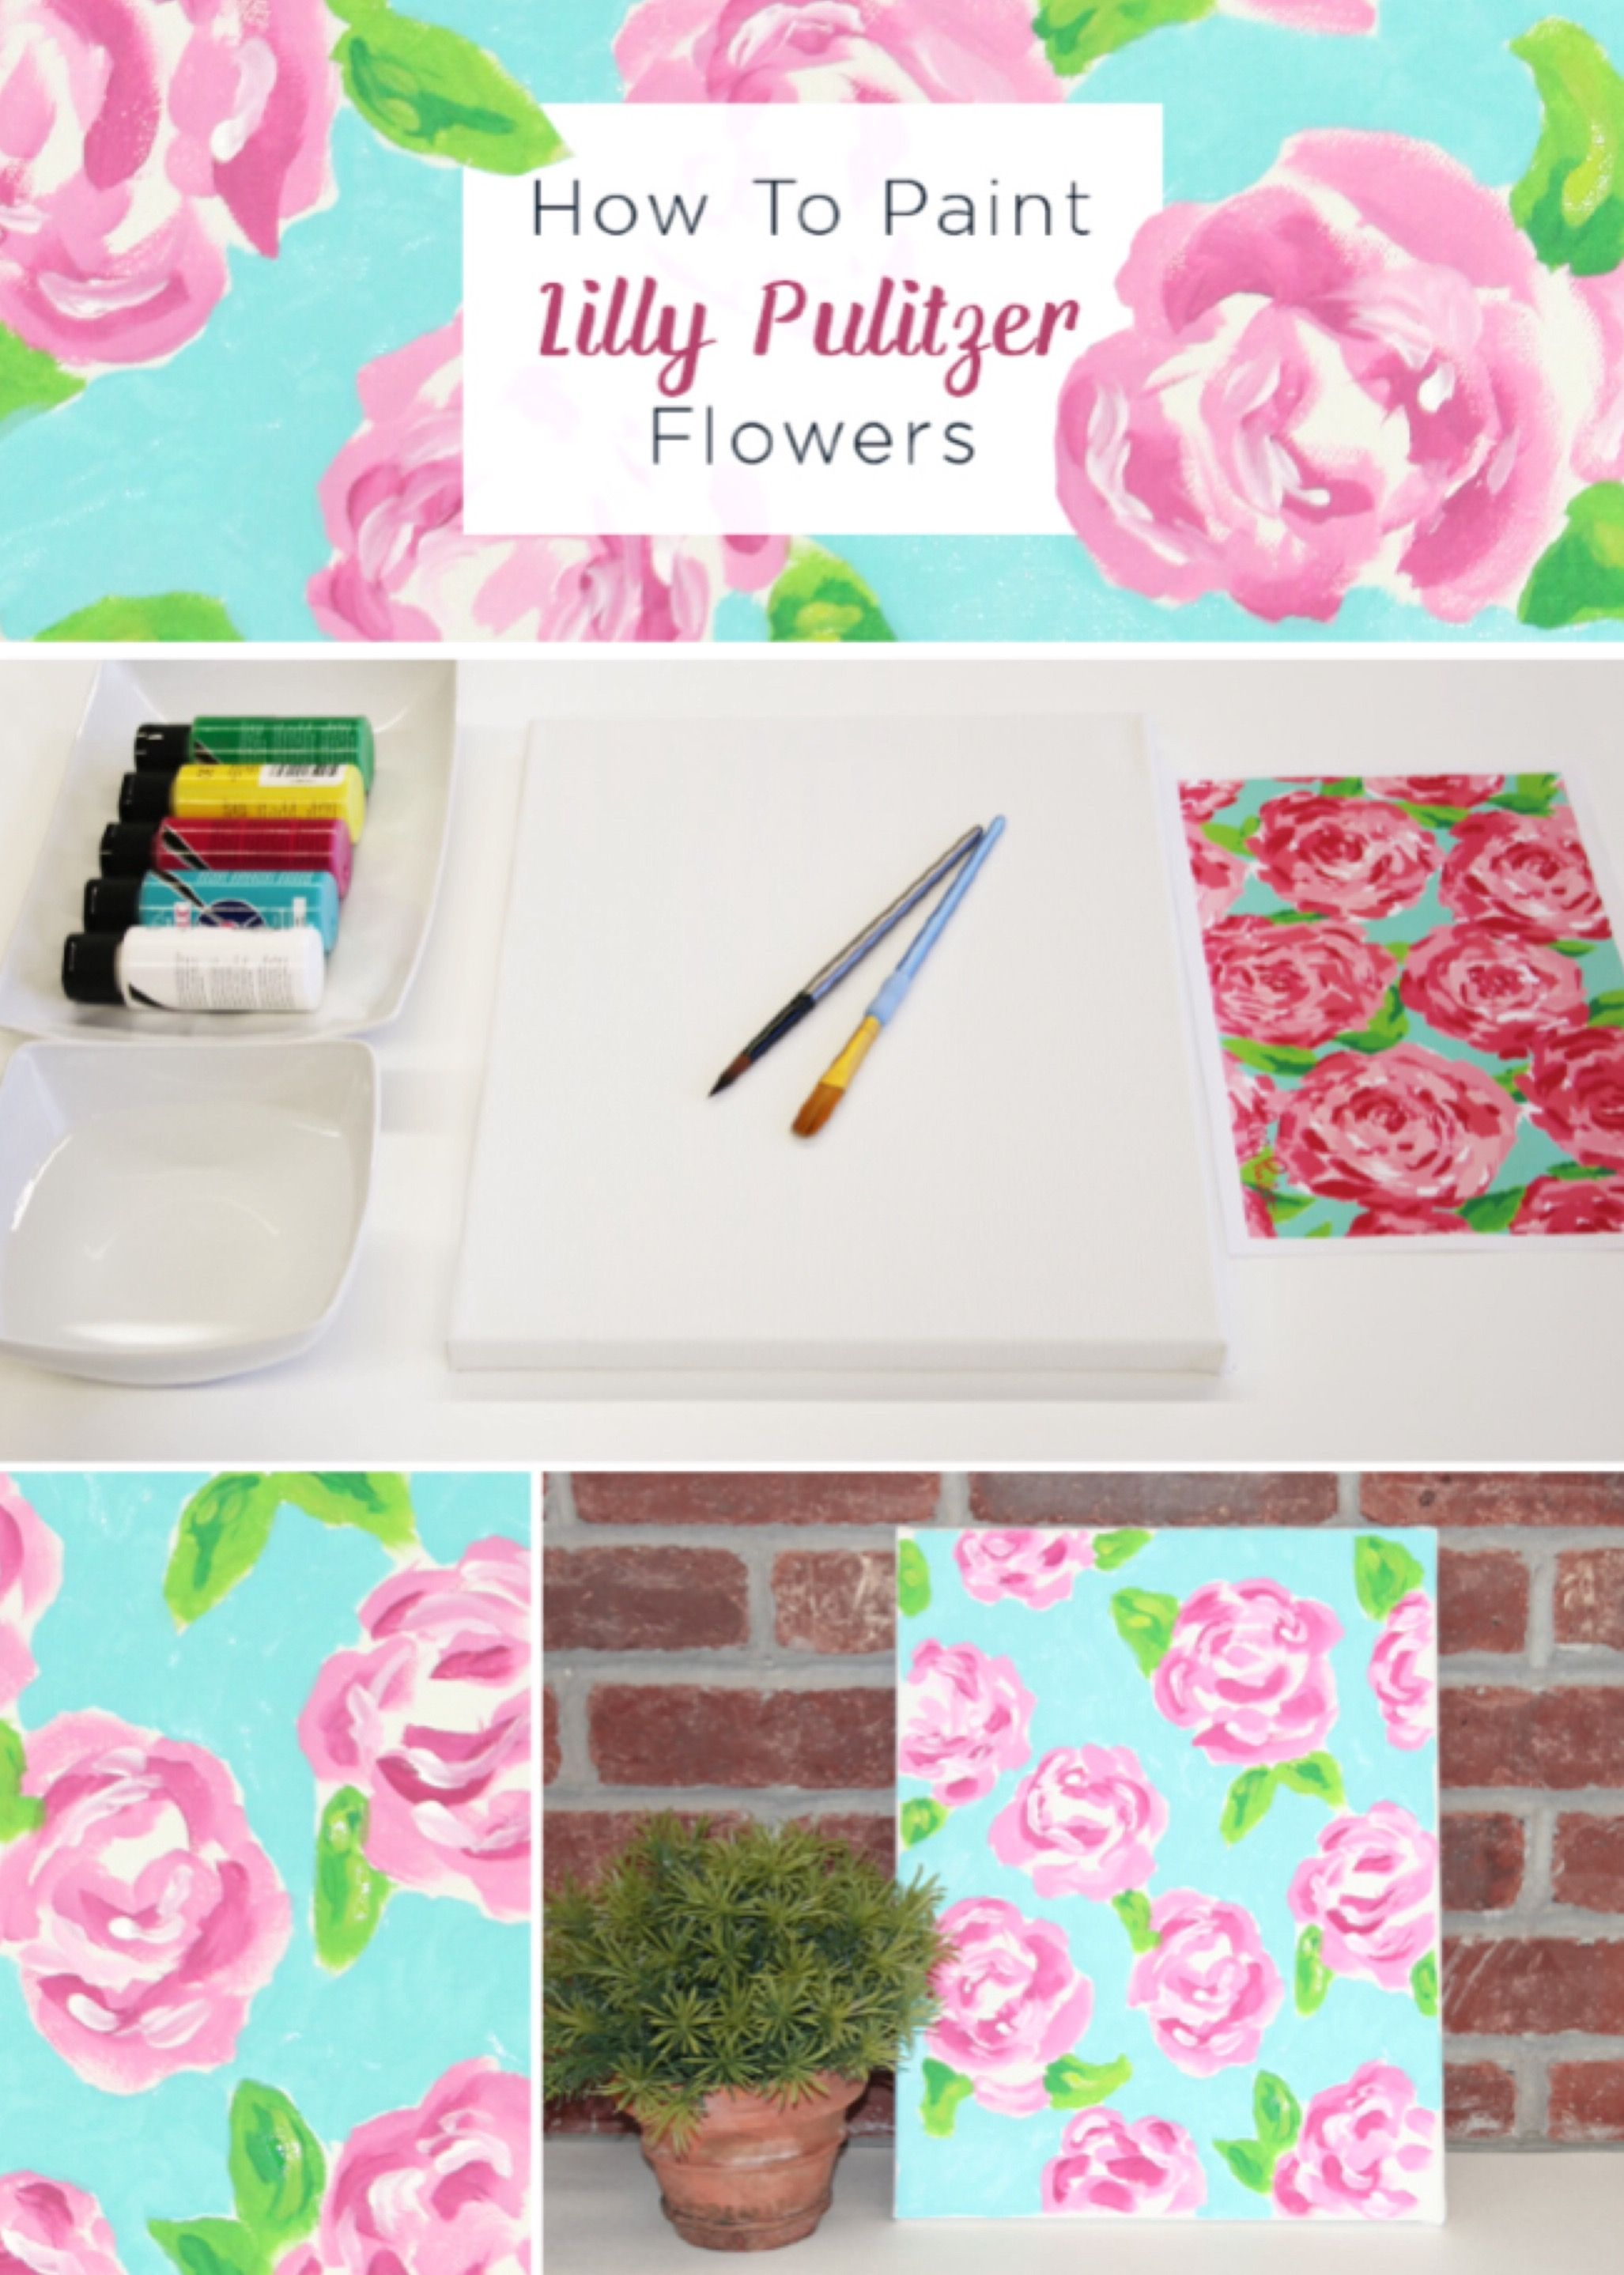 How To Paint Lilly Pulitzer Flowers   Pinterest   Pinturas, Ropa y Arte